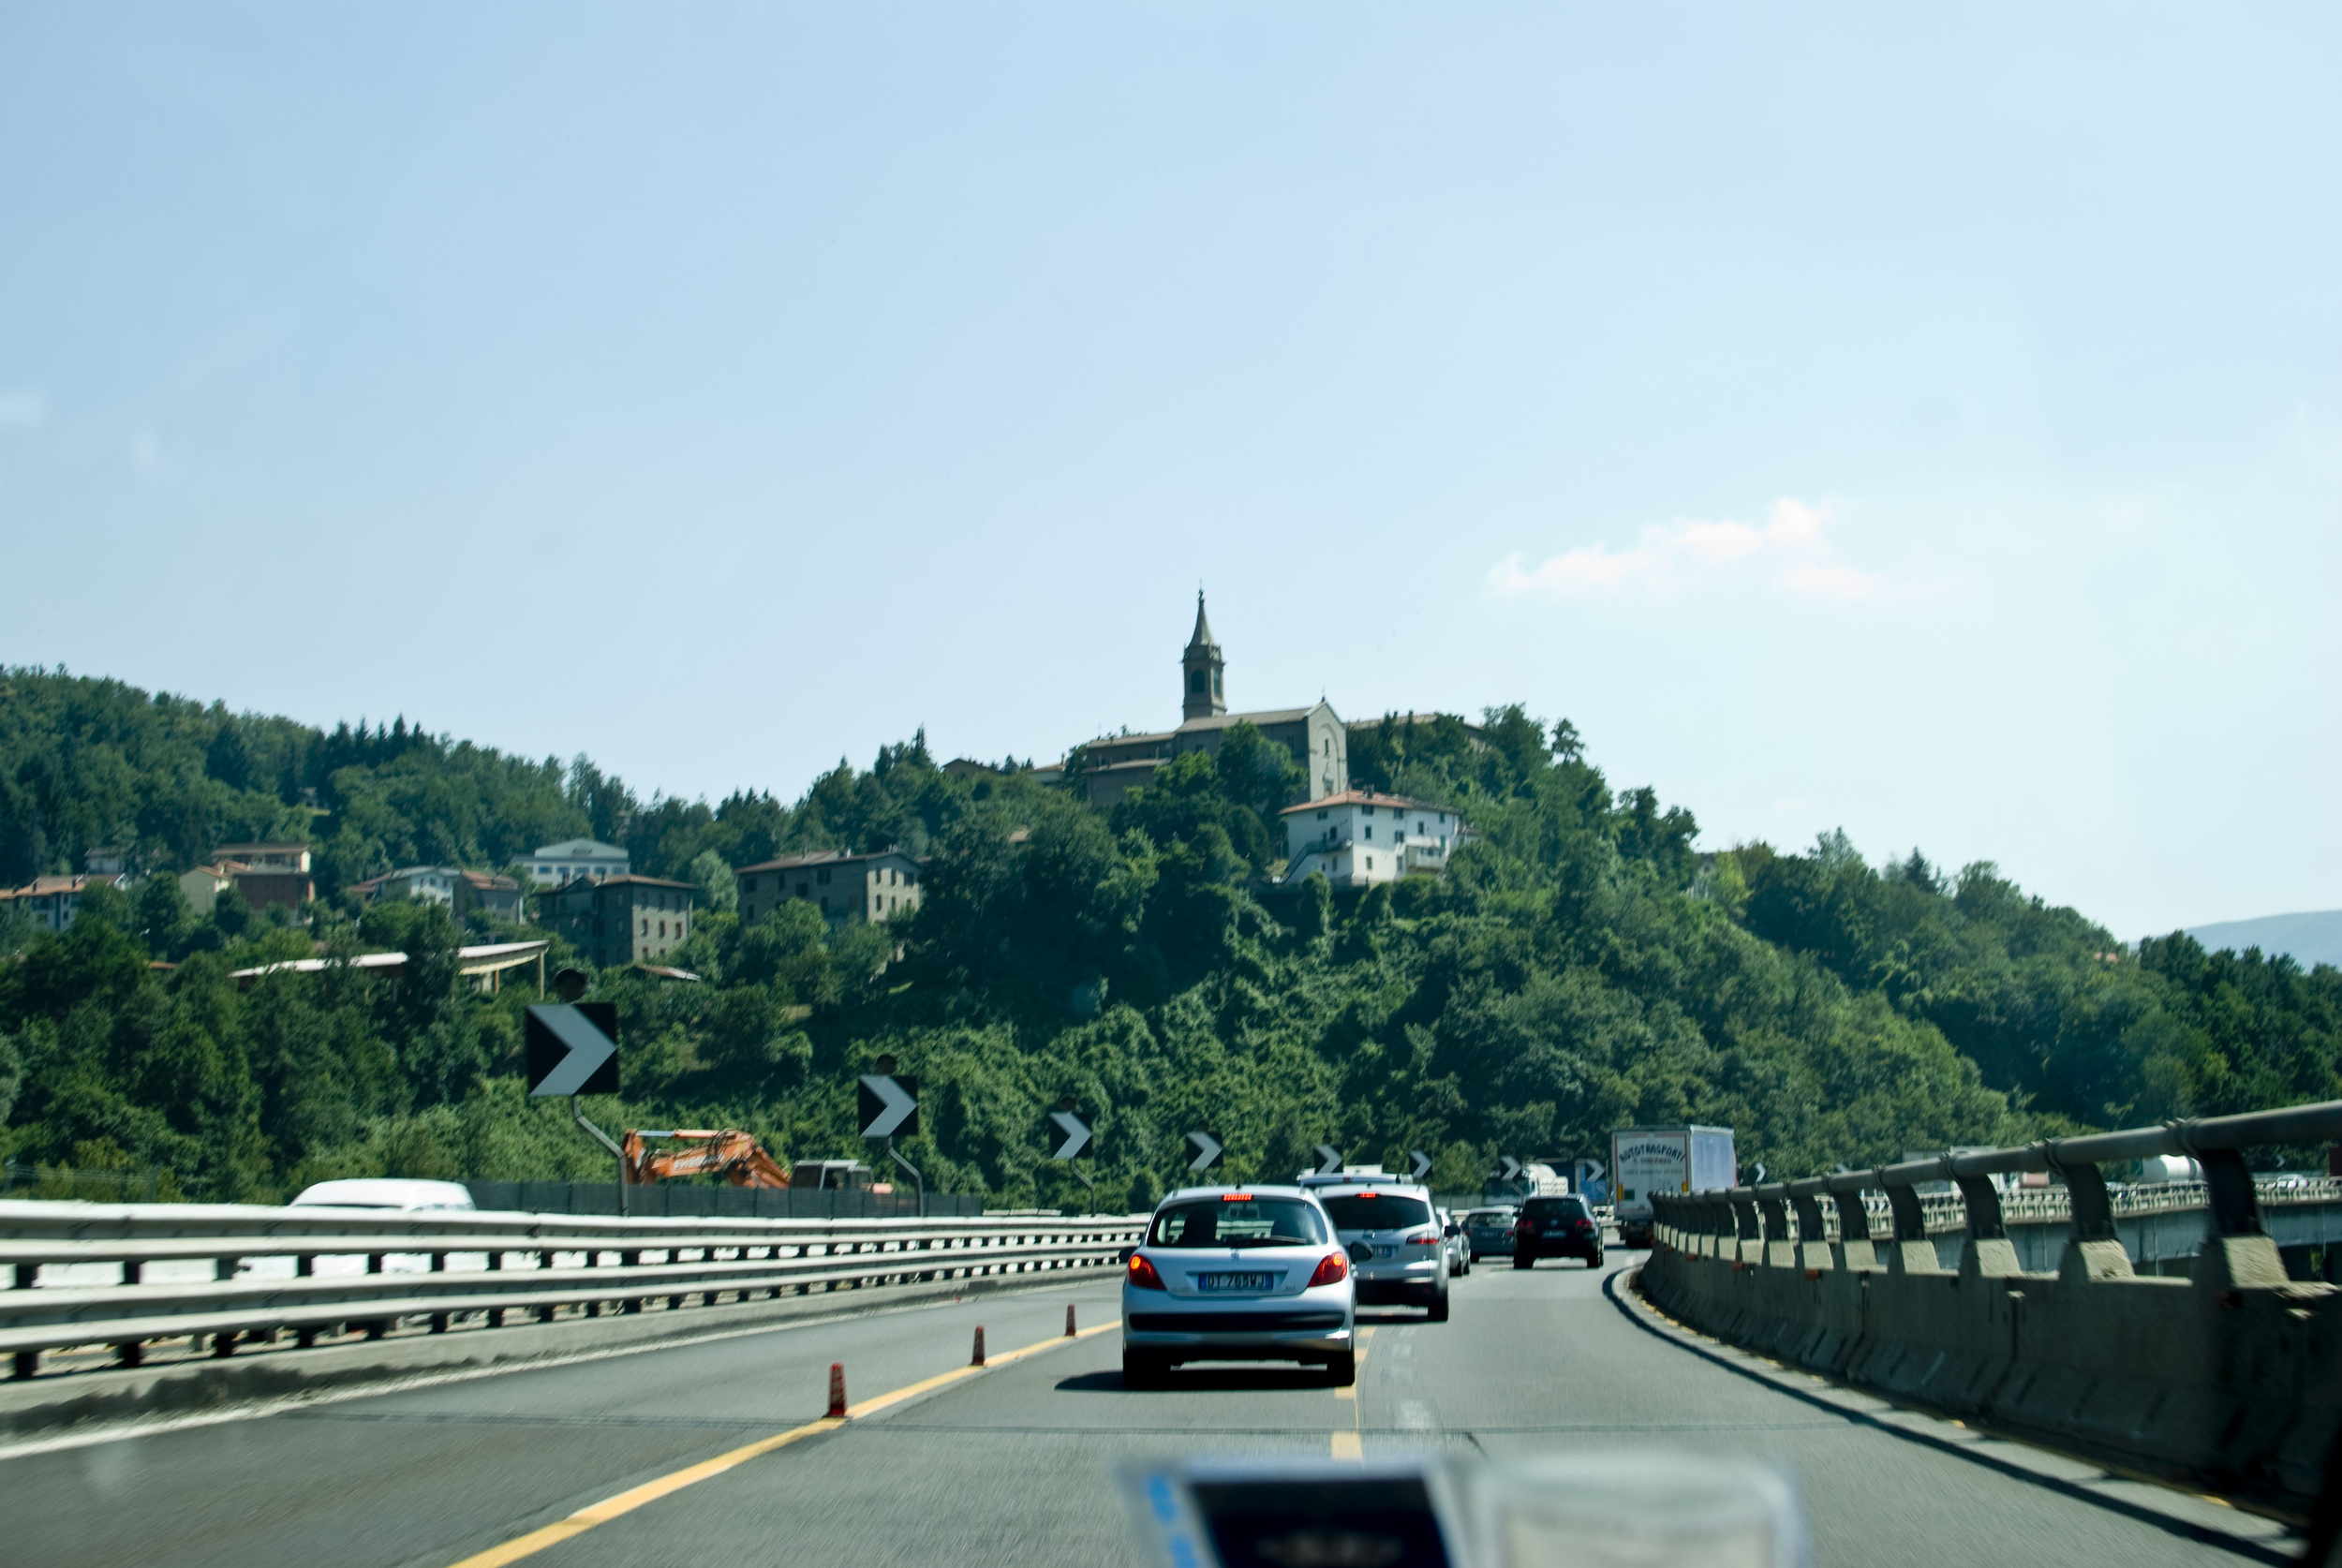 on-the-way-to-florence_4797839440_o.jpg